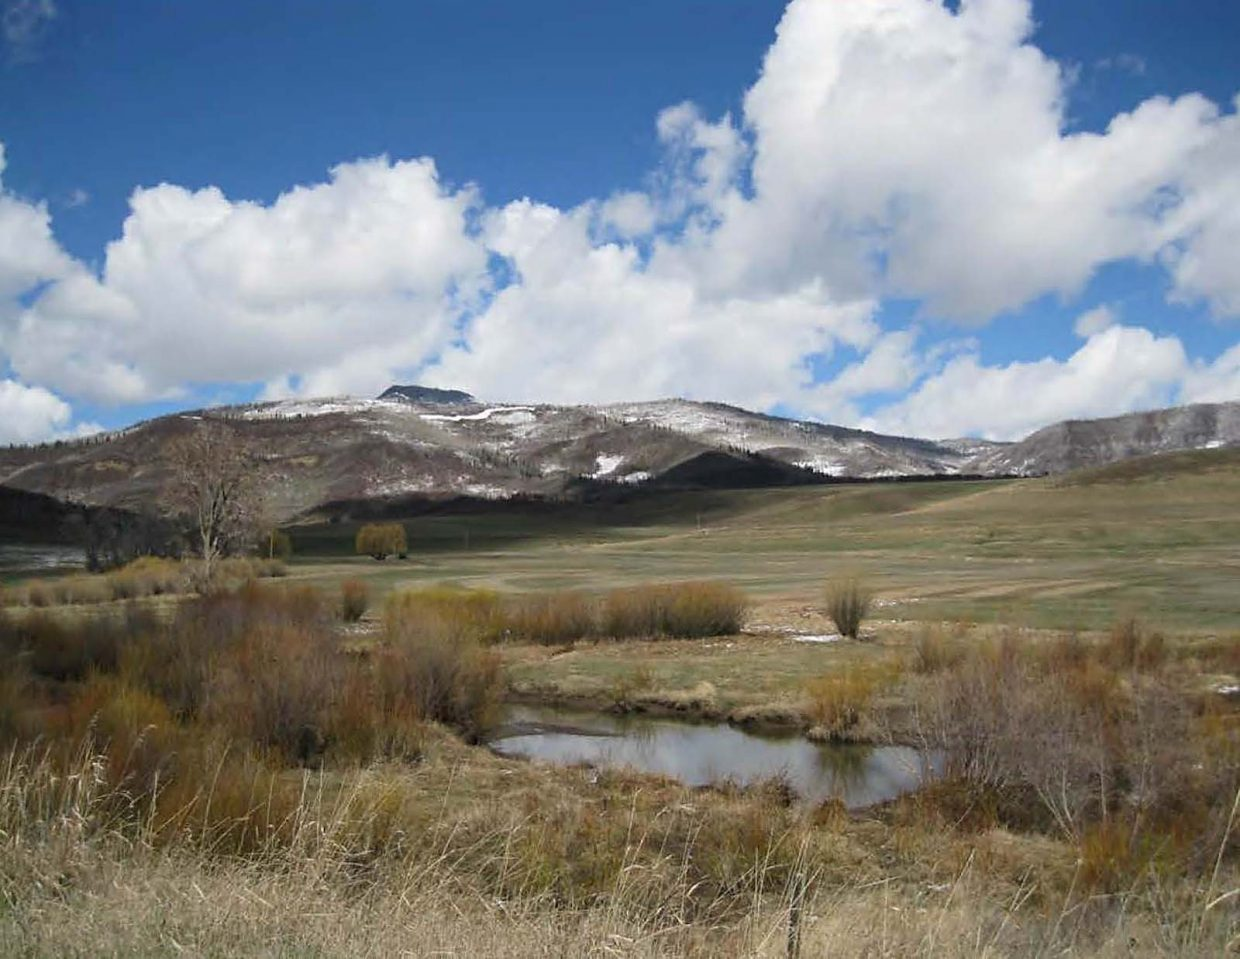 Deep Creek Meadows Ranch, in addition to productive hay meadows, is home to a nesting pair of sandhill cranes and is in close proximity to Columbian sharp-tailed and sage grouse breeding leks.